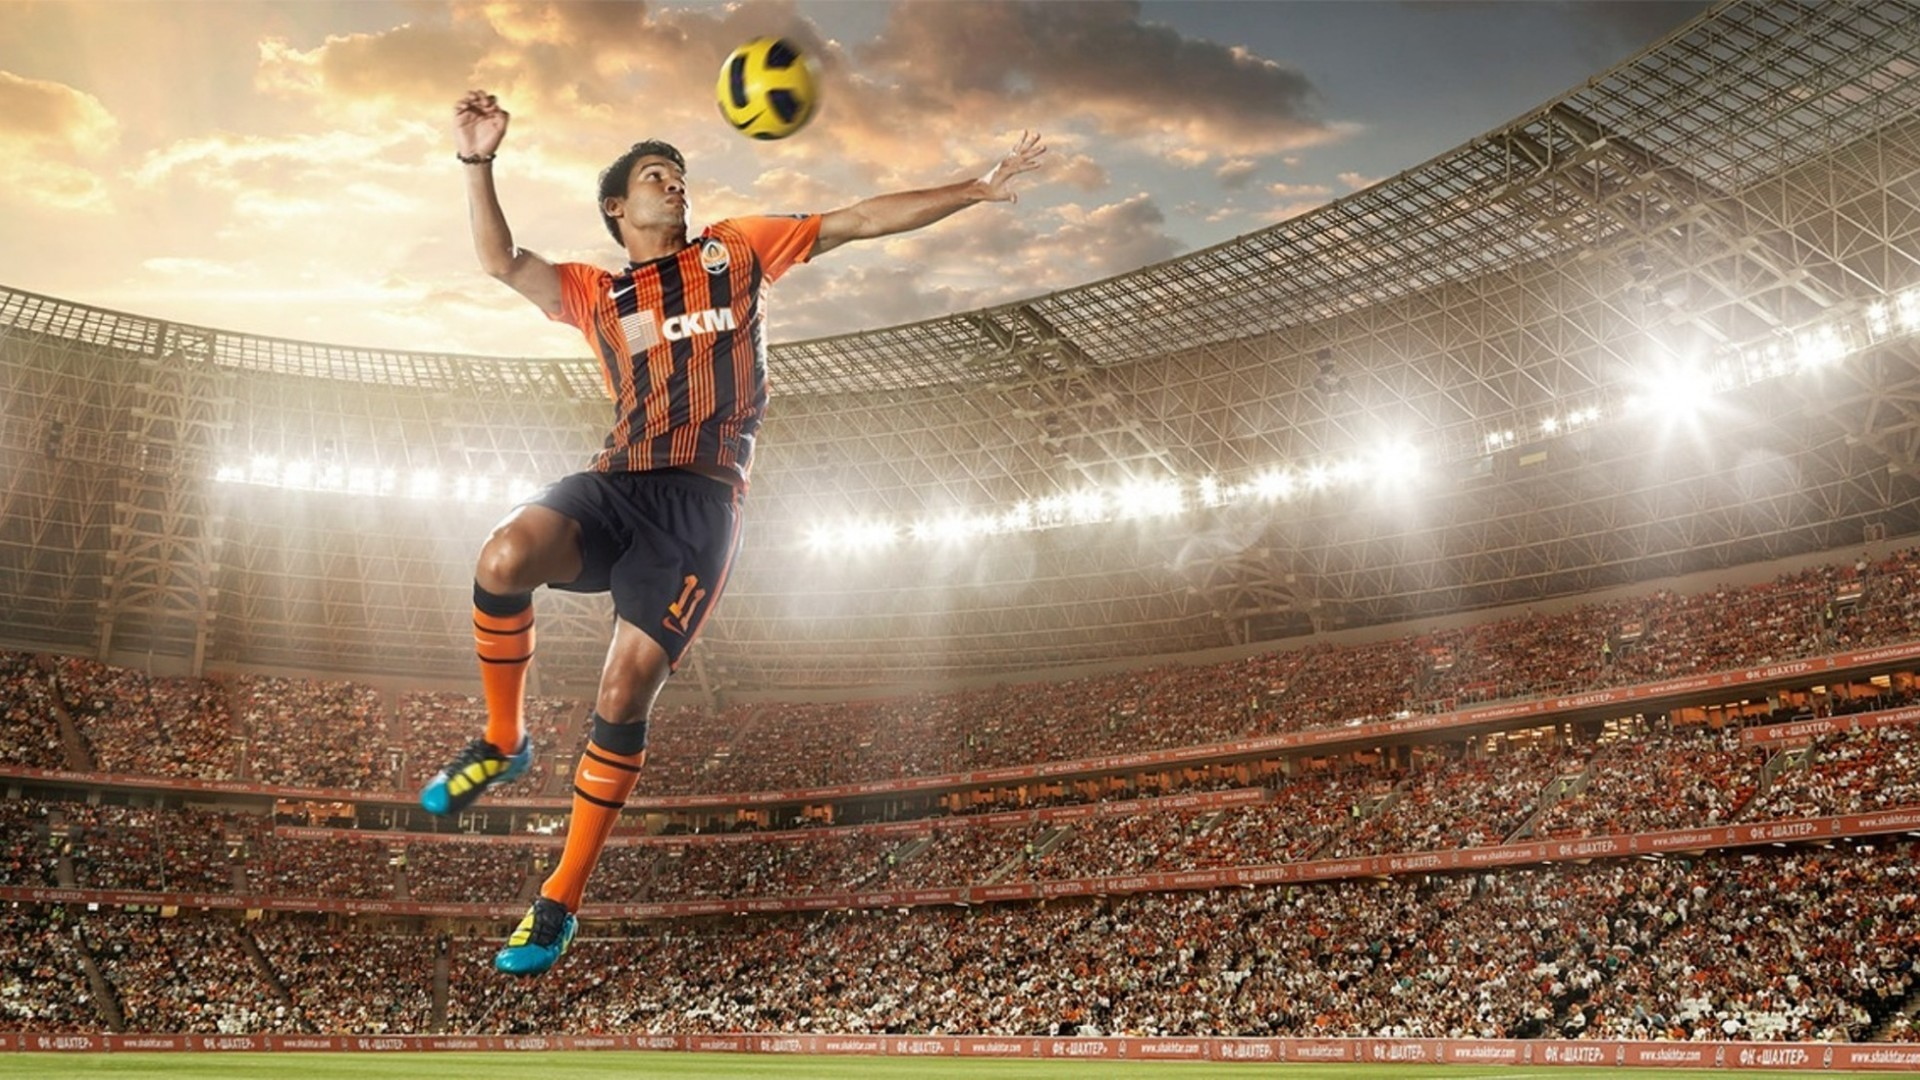 1920x1080 ... Soccer player hits the ball wallpapers and images wallpapers